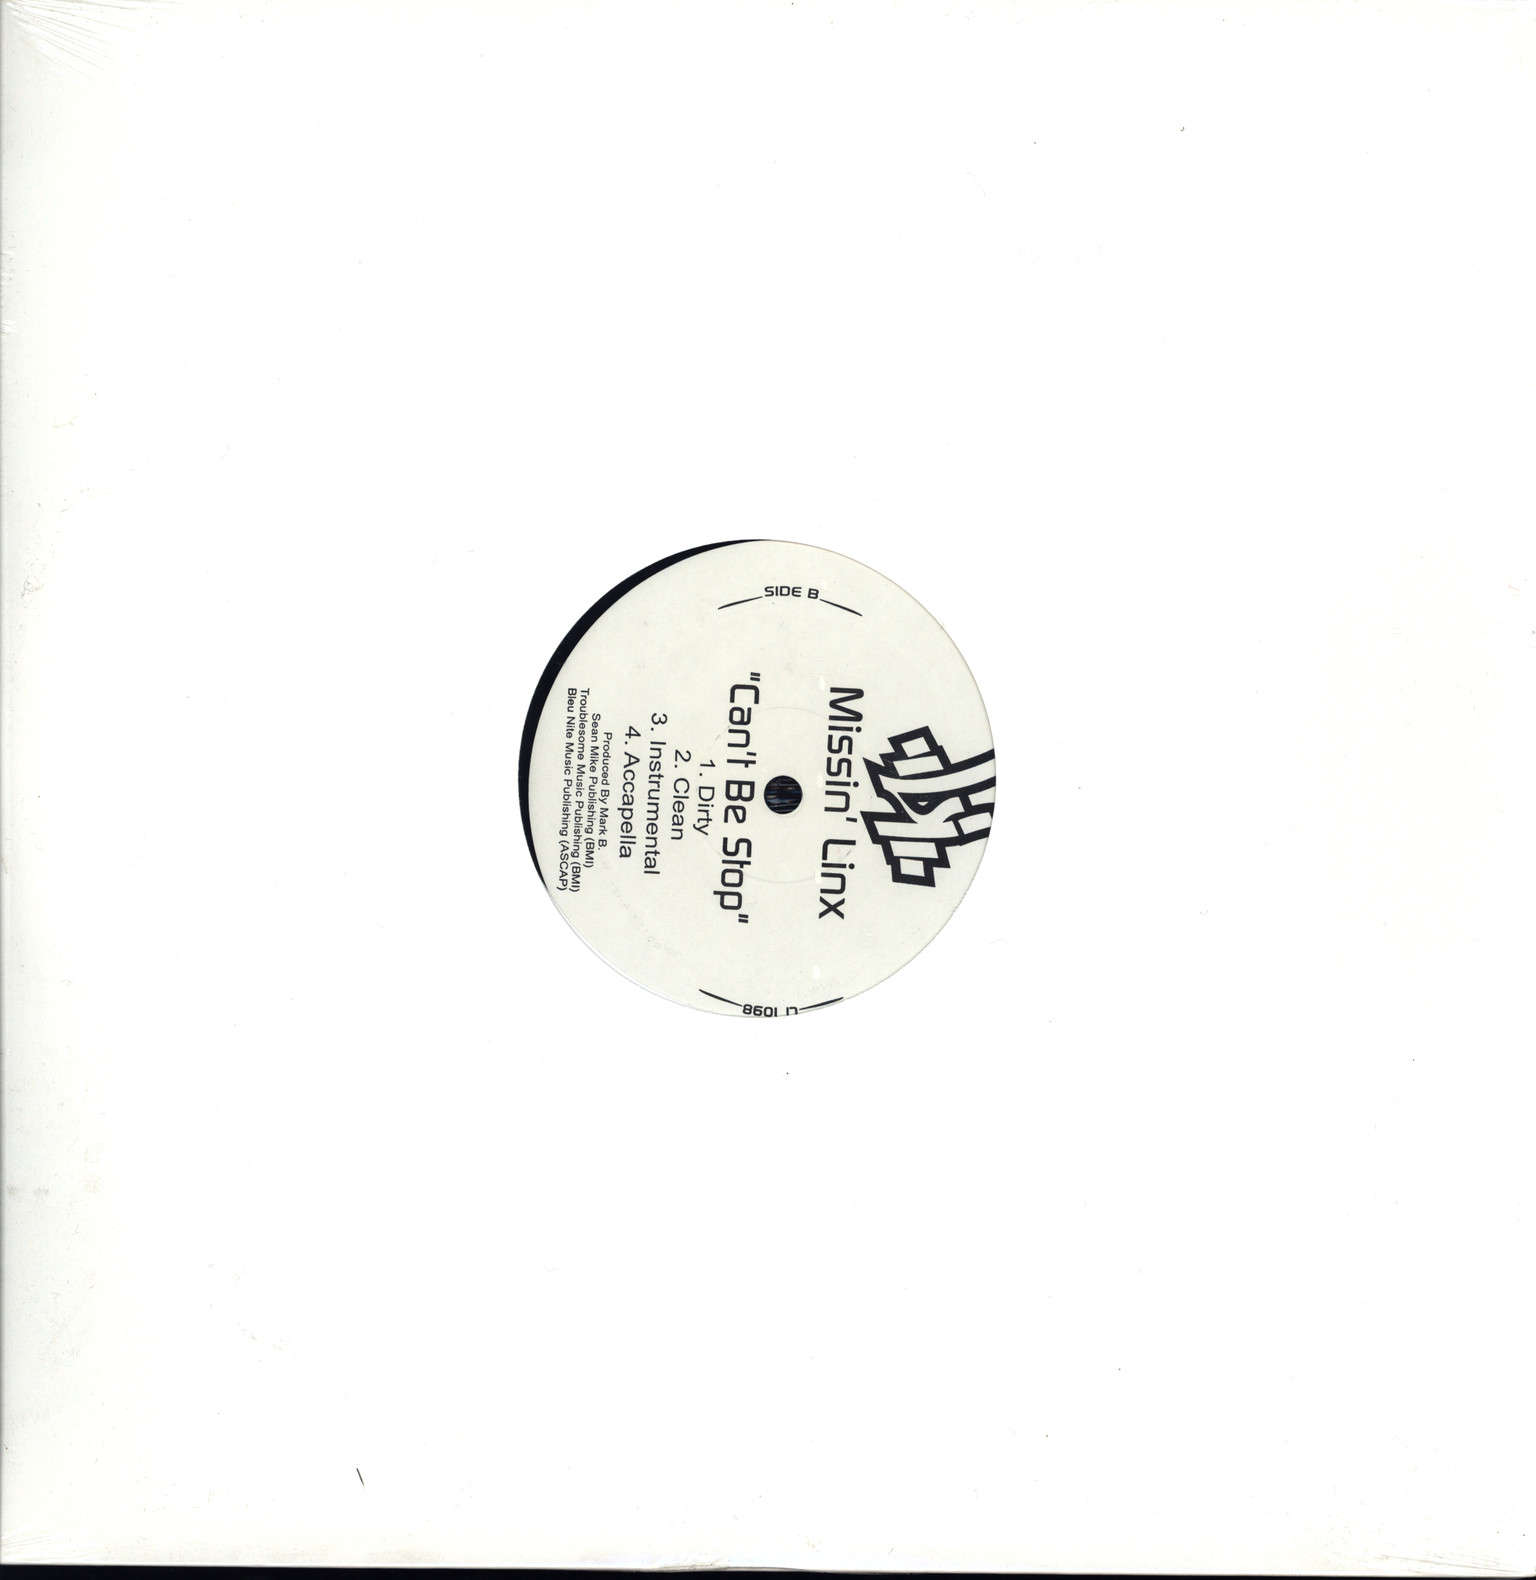 "Missin'linx: Sametime / Can't Be Stop, 12"" Maxi Single (Vinyl)"